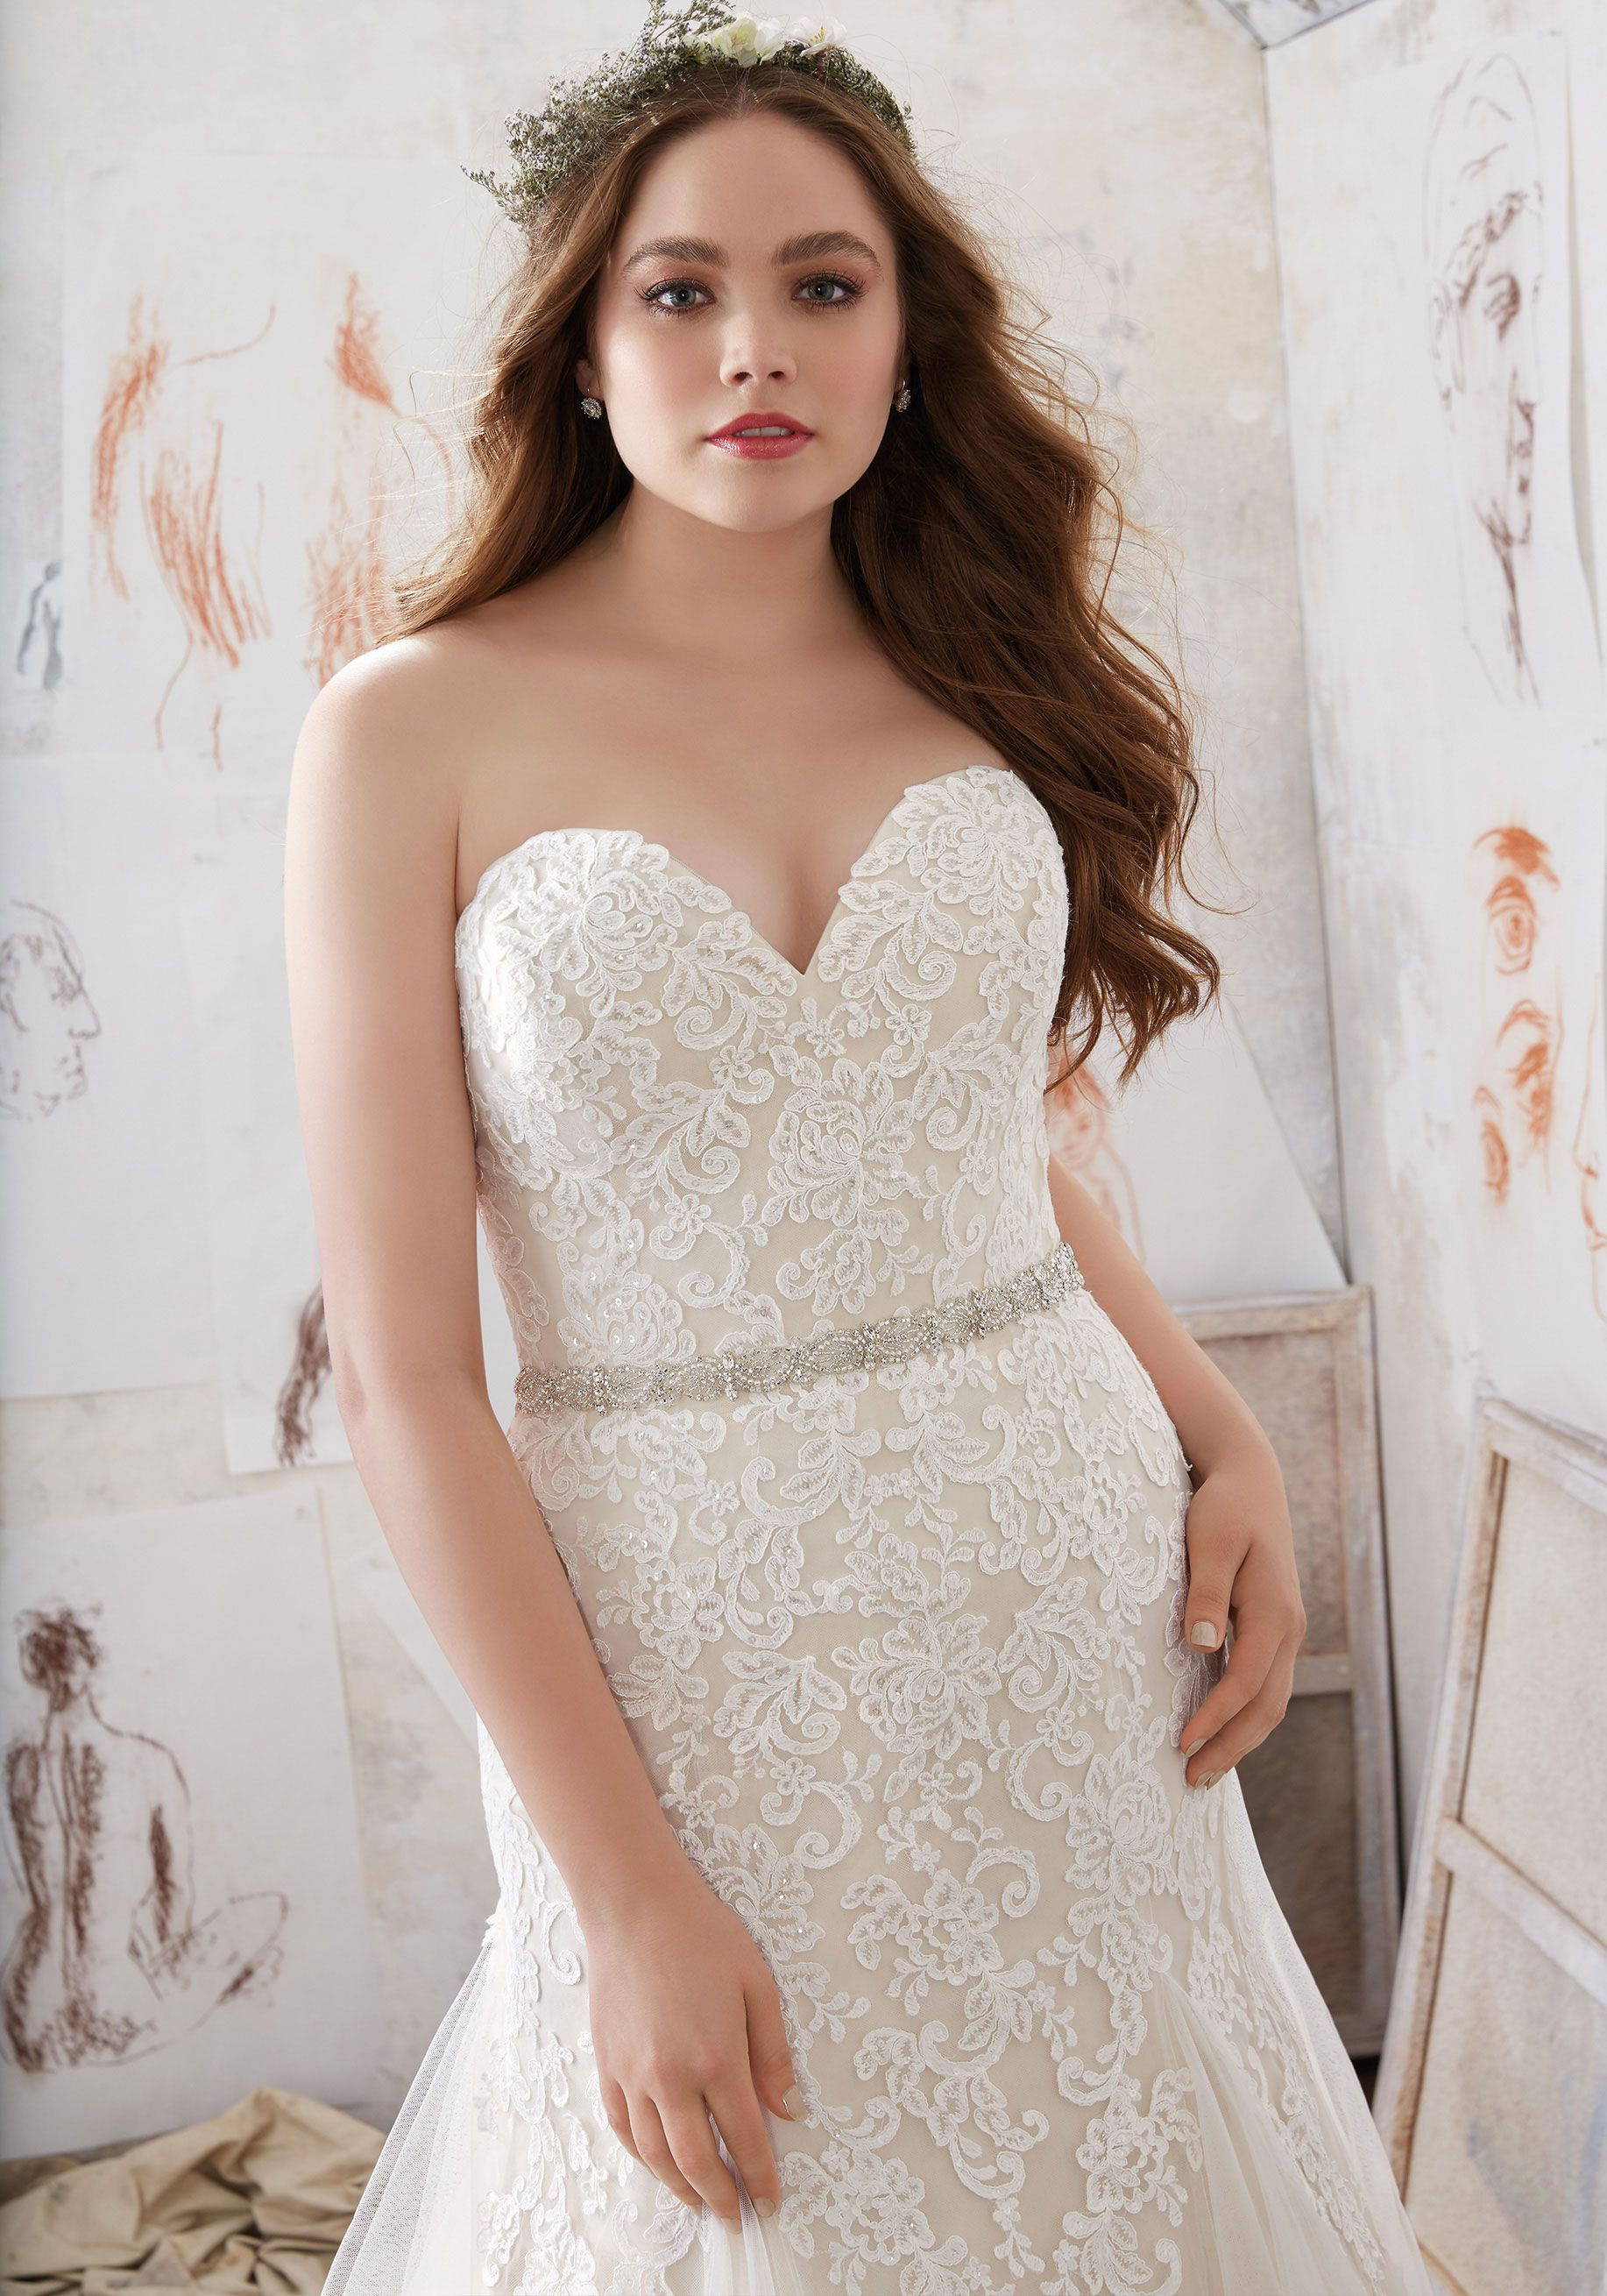 Lace dress gown  Designer Wedding Dresses and Bridal Gowns by Morilee Beautiful Plus